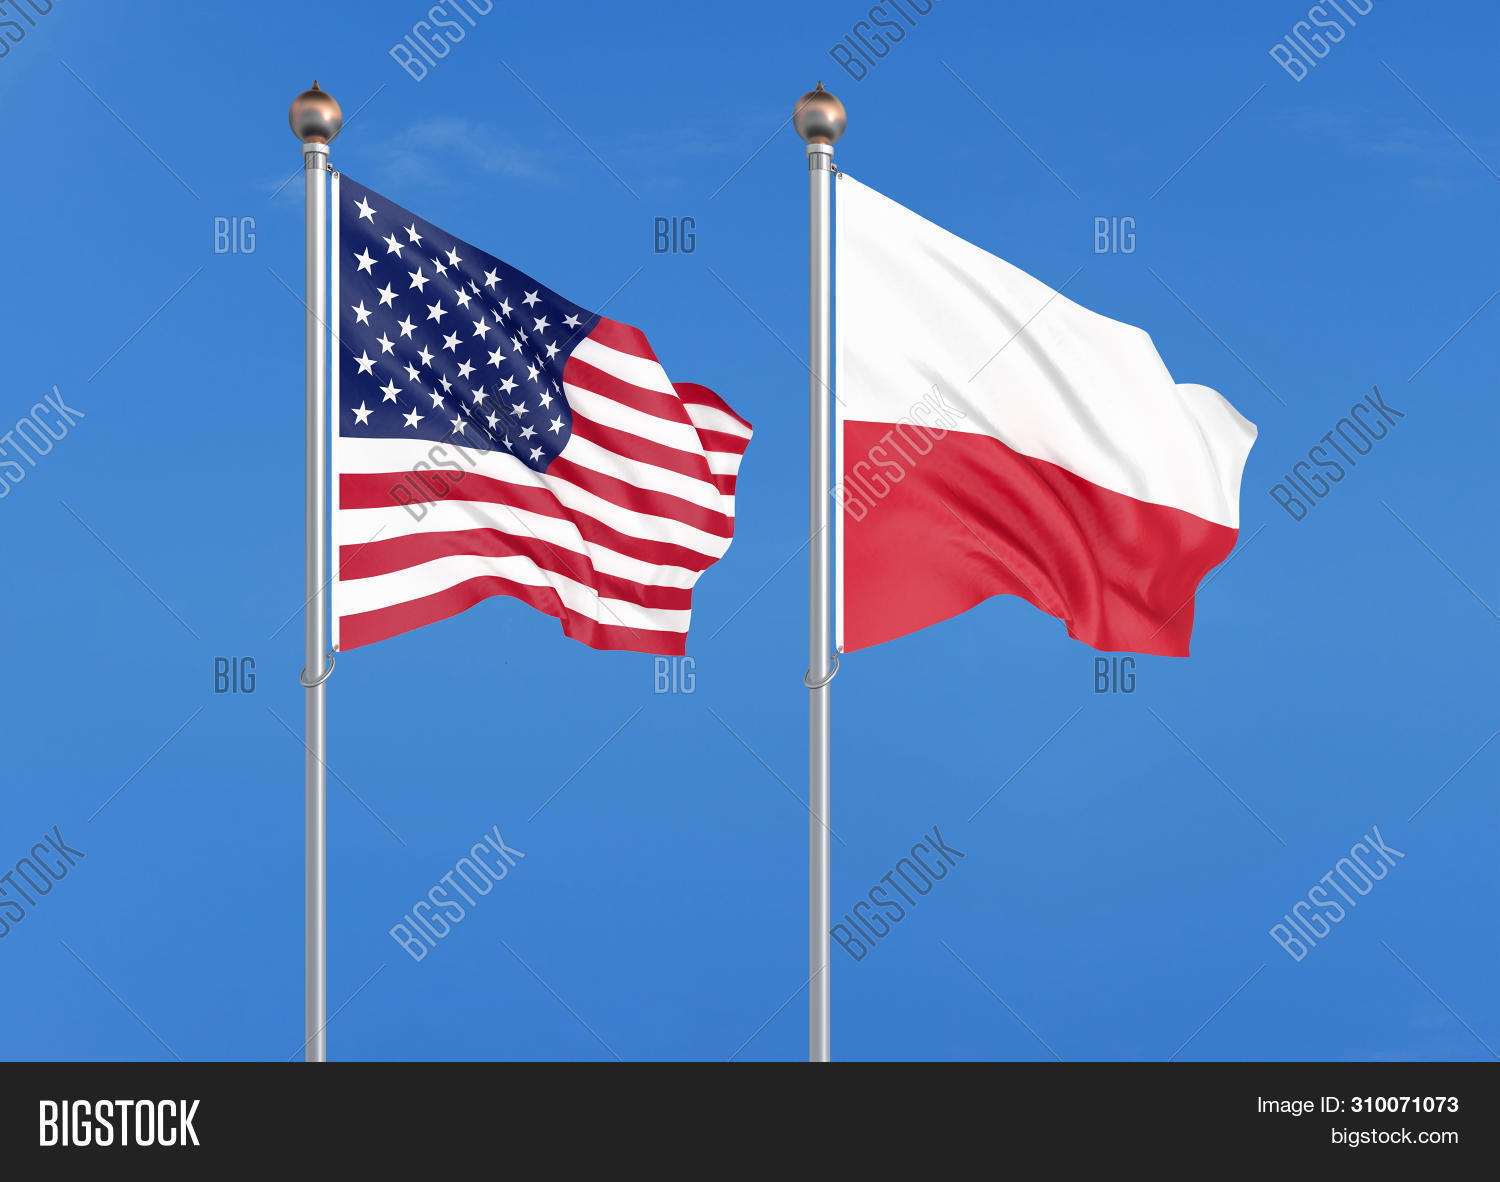 3d,Europe,Poland,america,american,background,celebrate,celebration,combat,combination,communication,competition,concept,conference,conflict,country,democracy,dialog,disagreement,economy,flag,freedom,government,illustration,nation,national,patriotic,patriotism,peace,relations,sanctions,sign,sky,soccer,sport,states,summit,symbol,team,together,trade,union,united,usa,veterans,vs,war,wave,waving